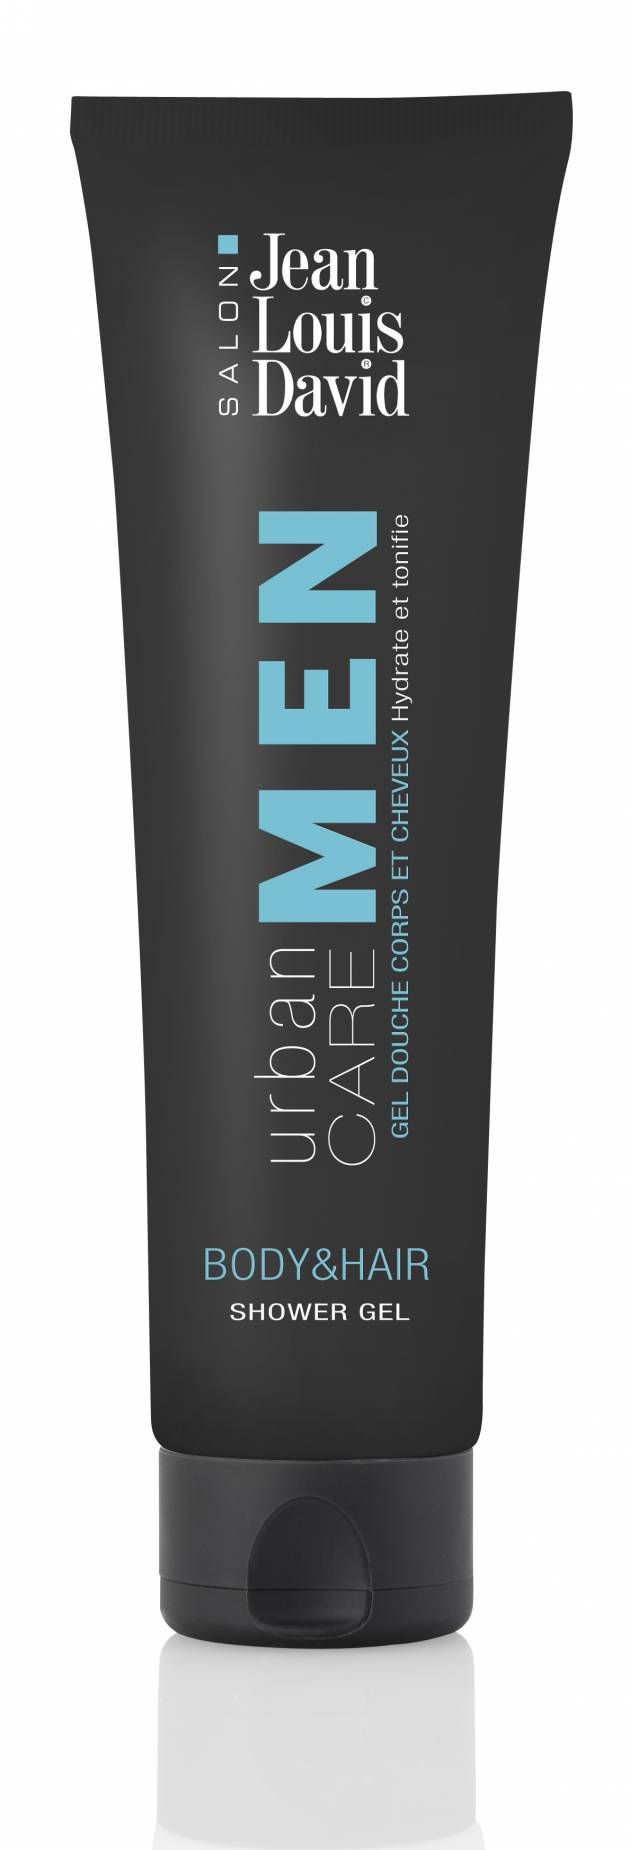 Novo: o Gel Duche cabelo e corpo Urban Care Men